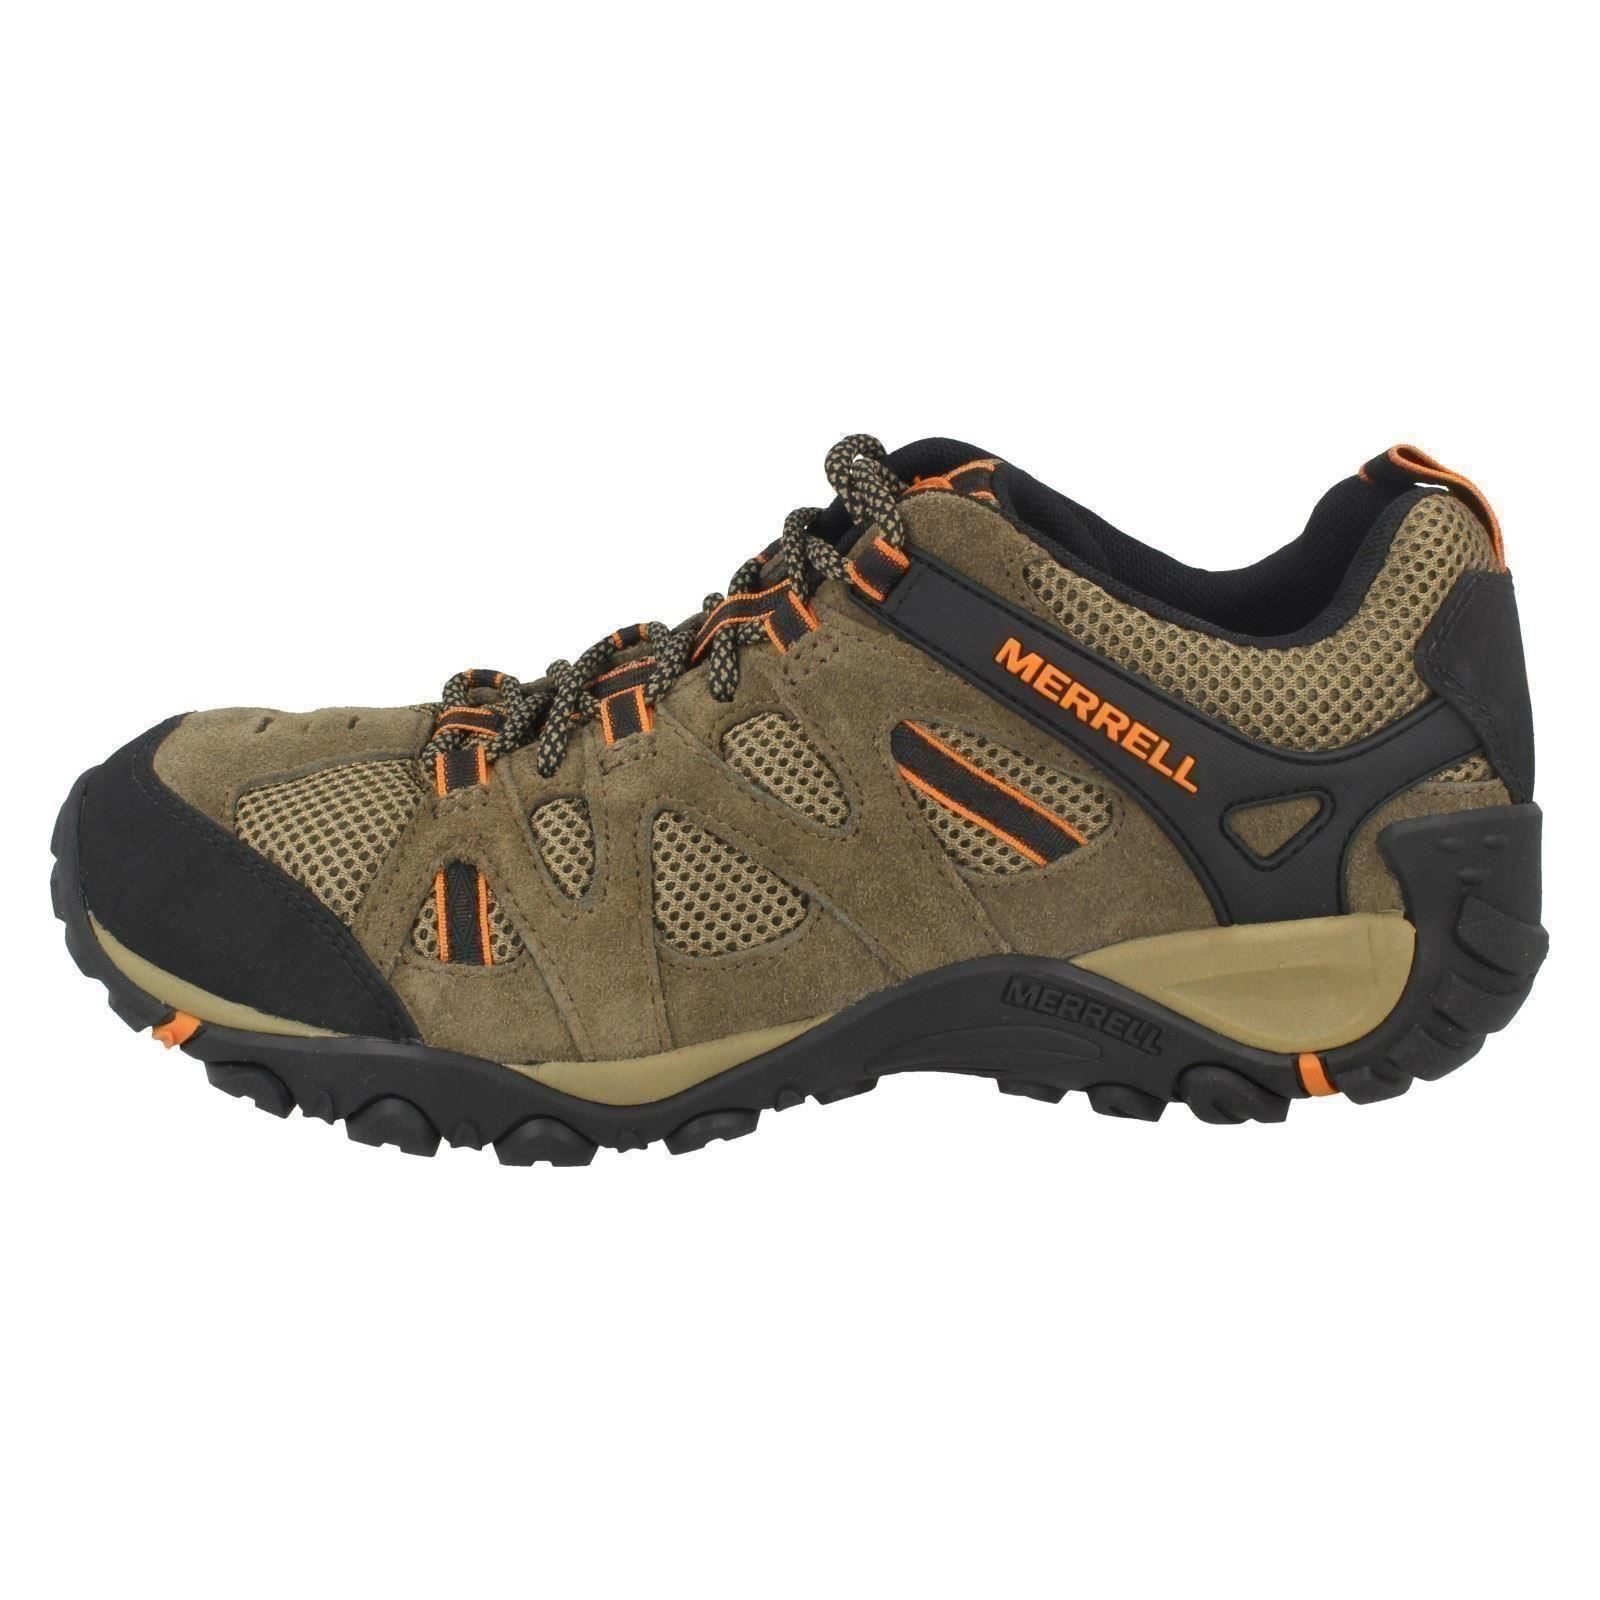 merrell walking shoes size 3 europe